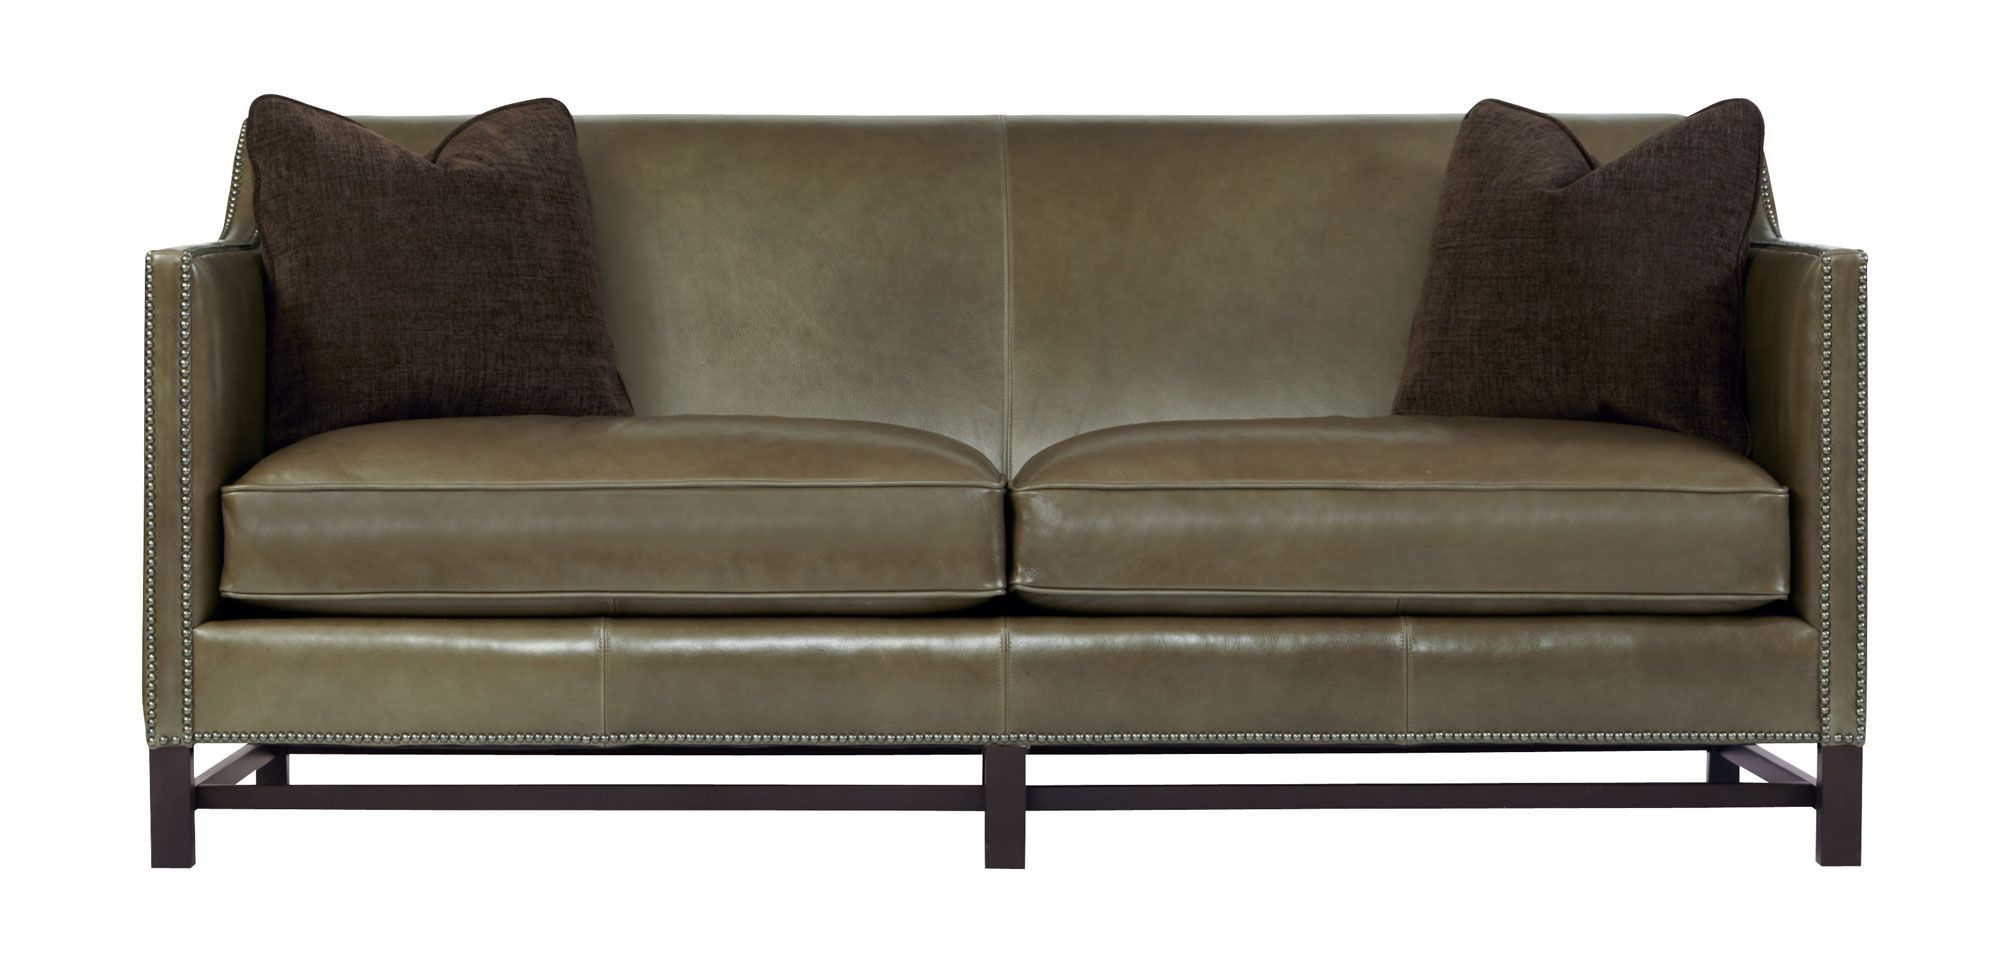 Bernhardt Chatham Sofa Furniture Elegant Living Room Design With Gray Thesofa